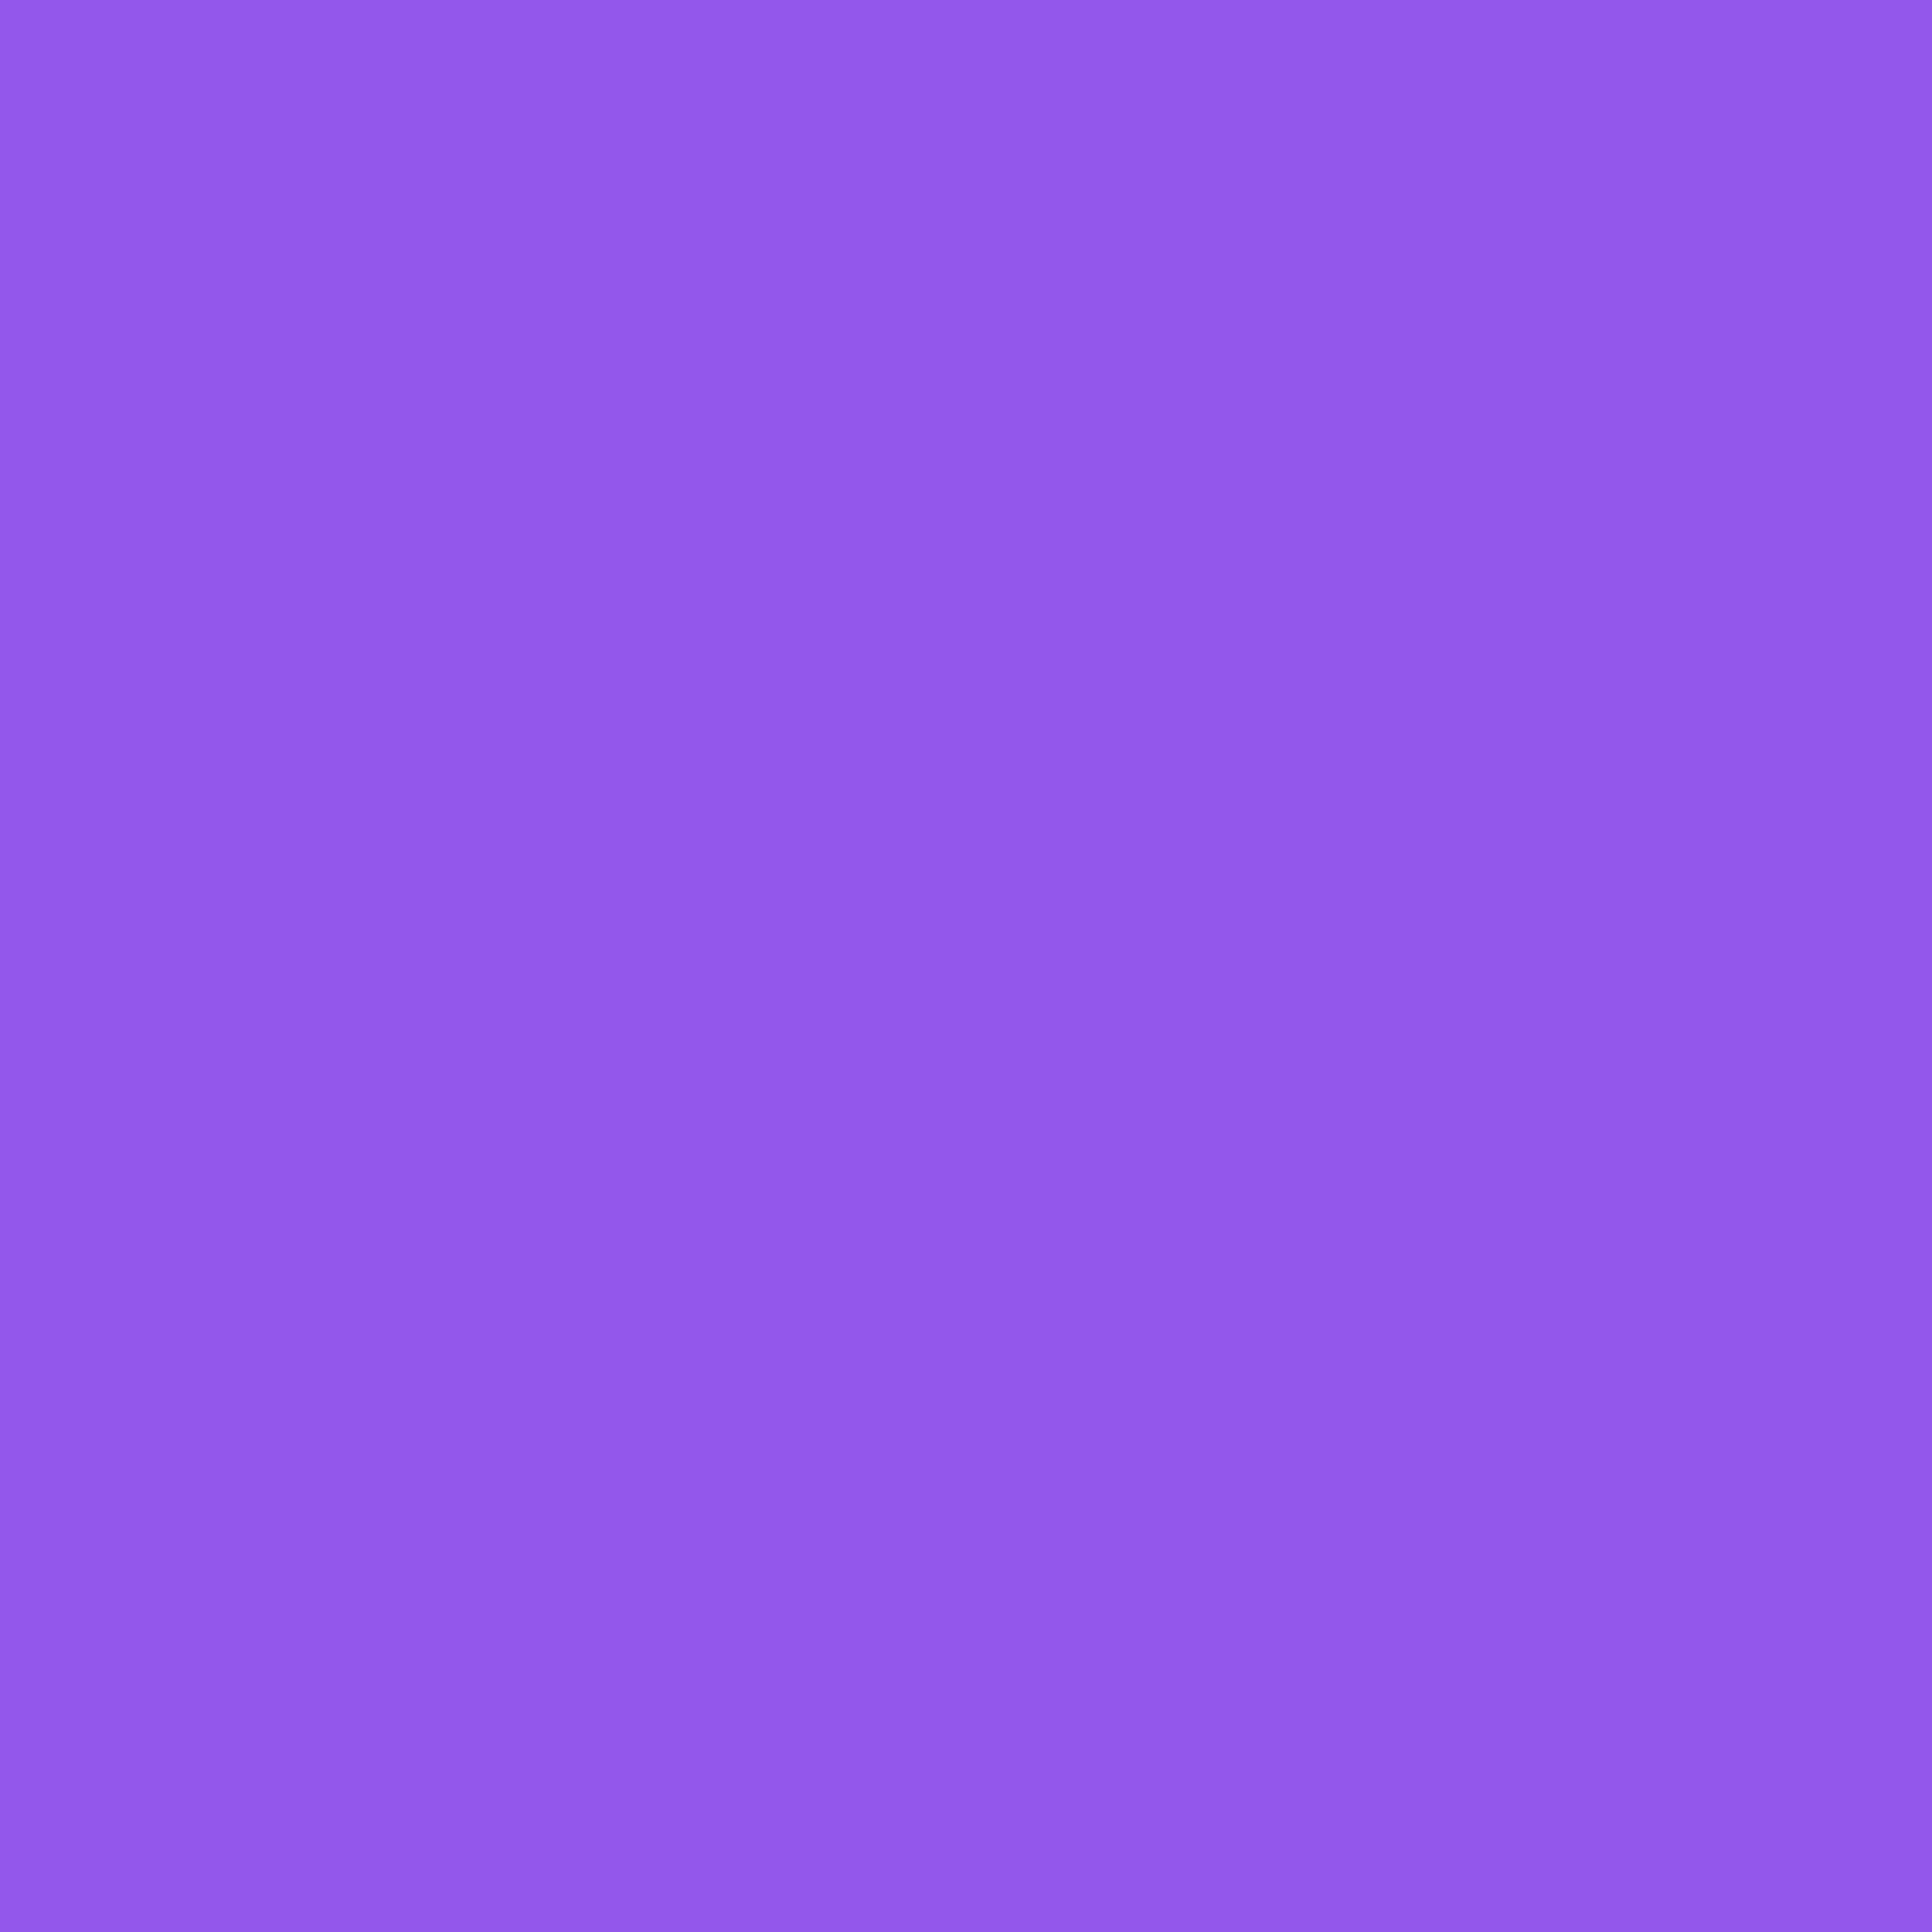 3600x3600 Lavender Indigo Solid Color Background